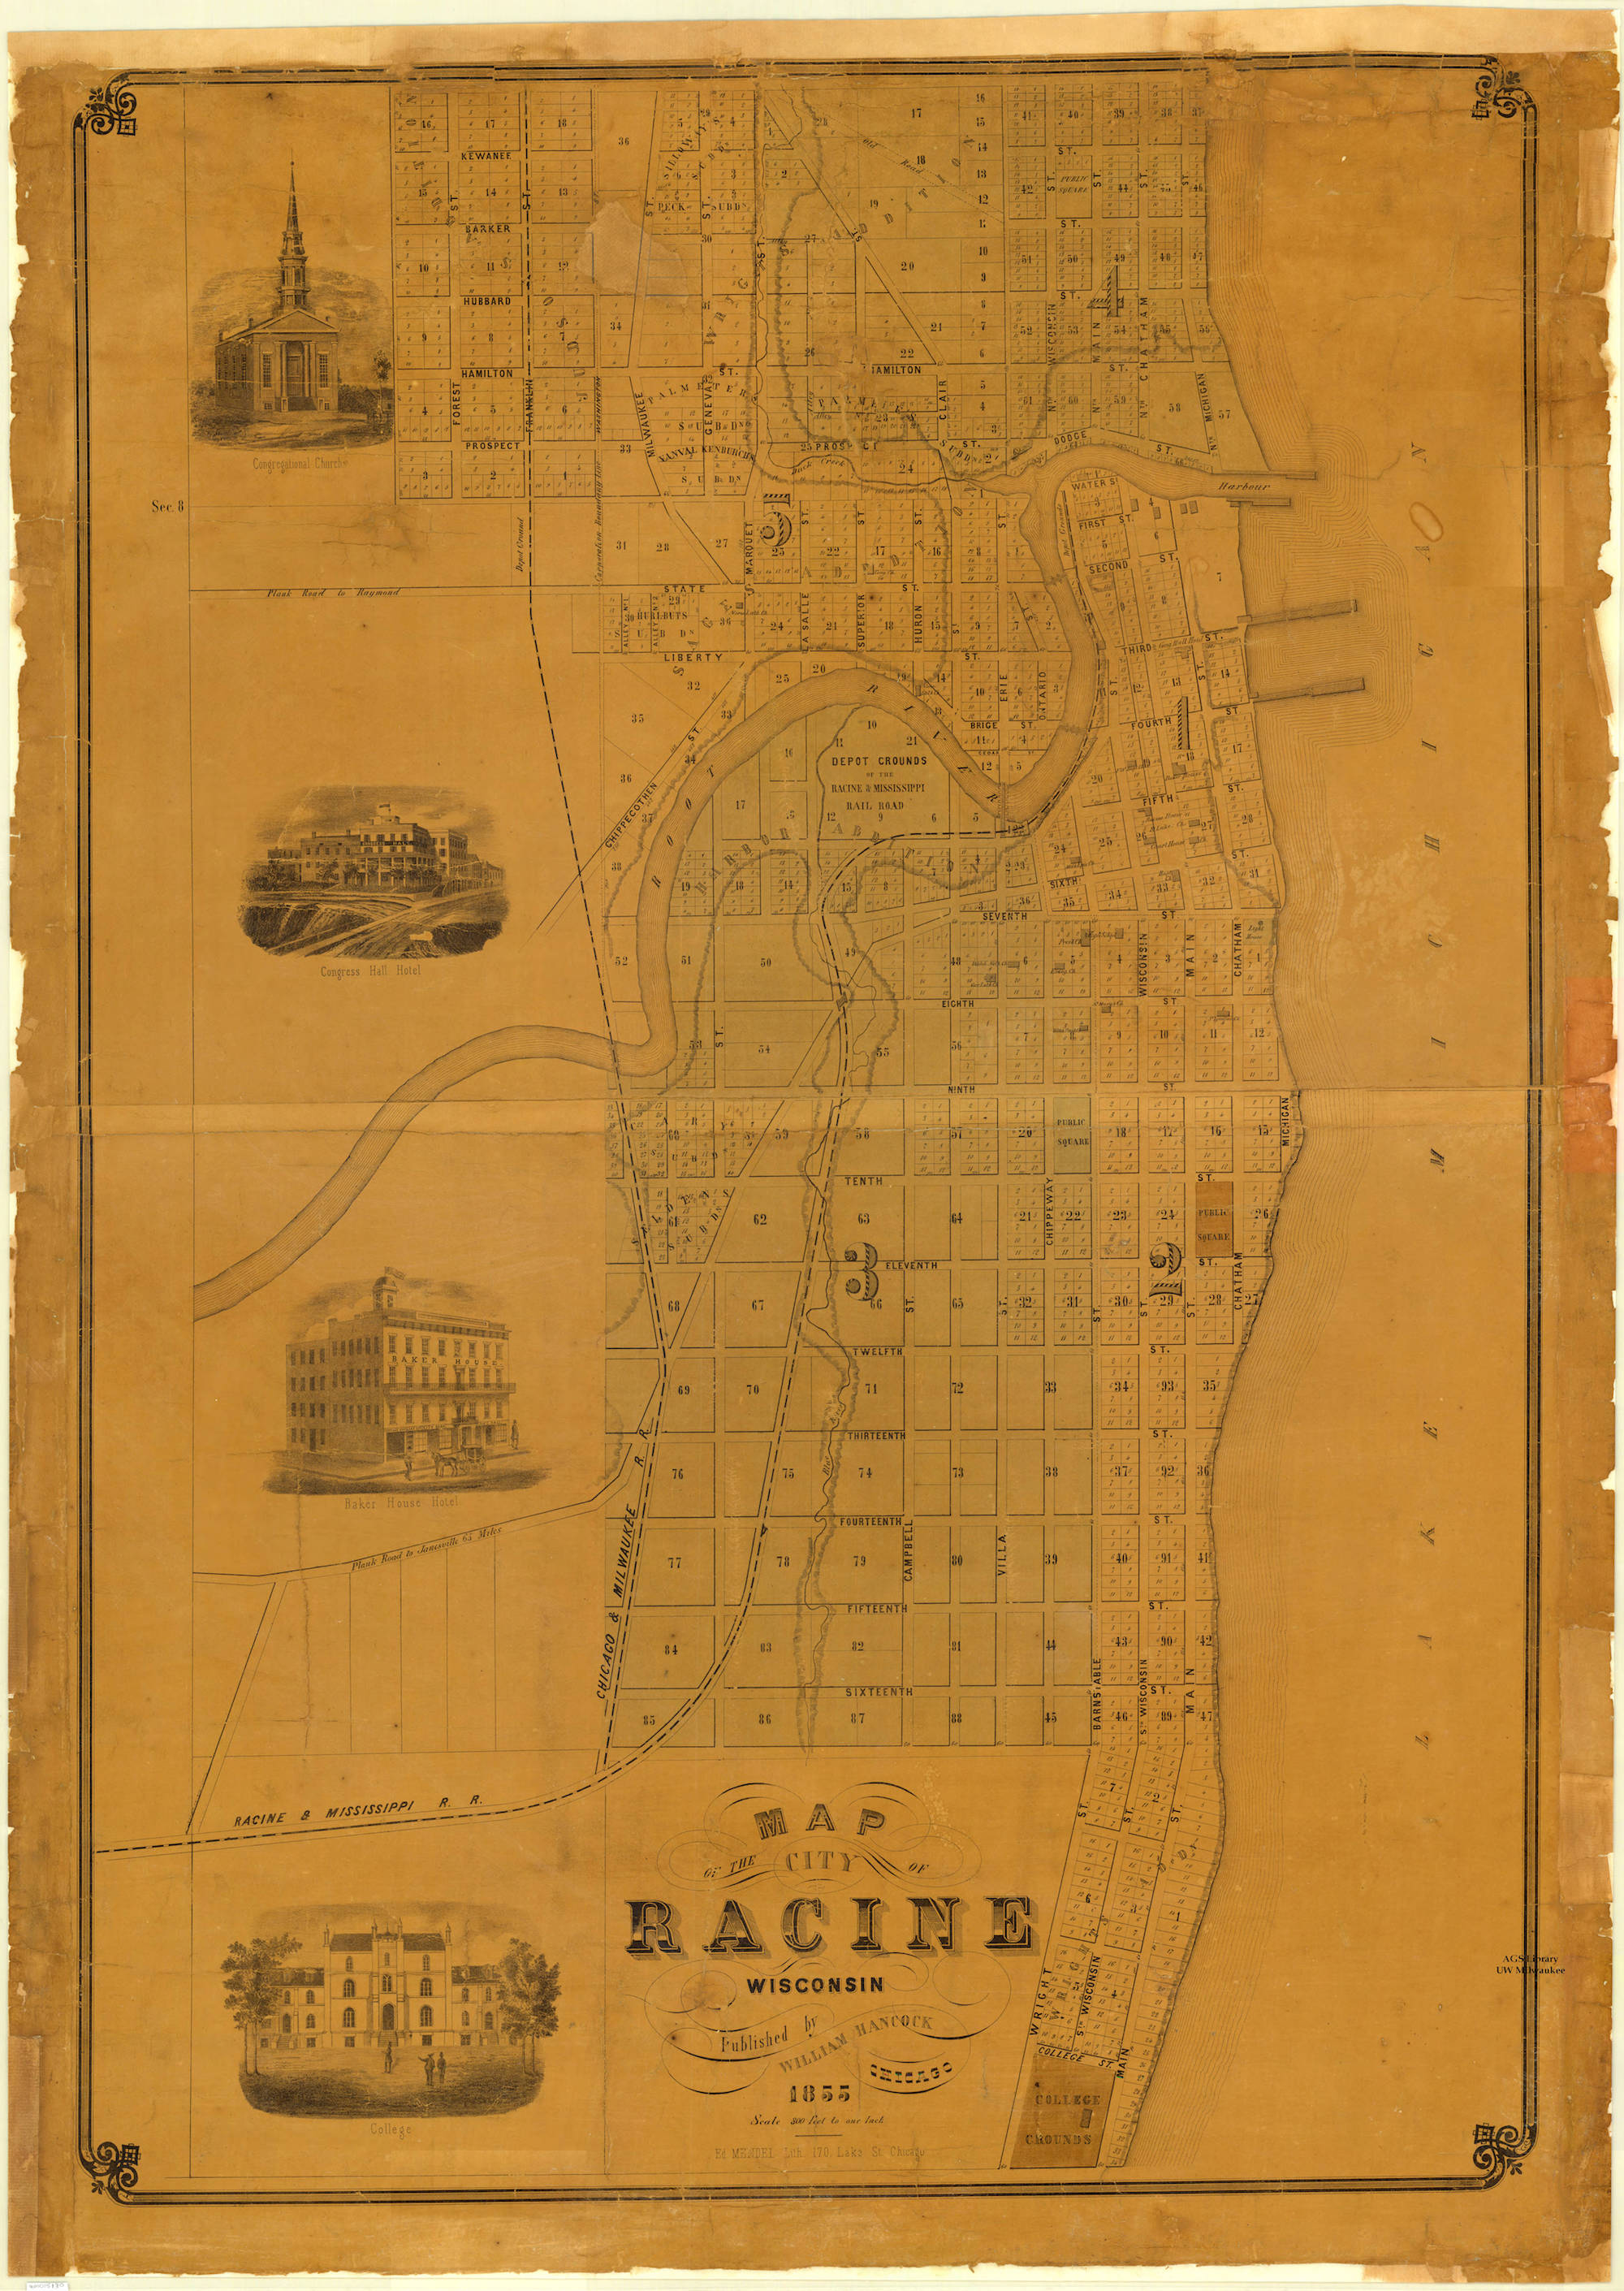 This 1855 map shows the City of Racine (now the seat of Racine County) 14 years after it was chartered as a village and 9 years after it became a city.